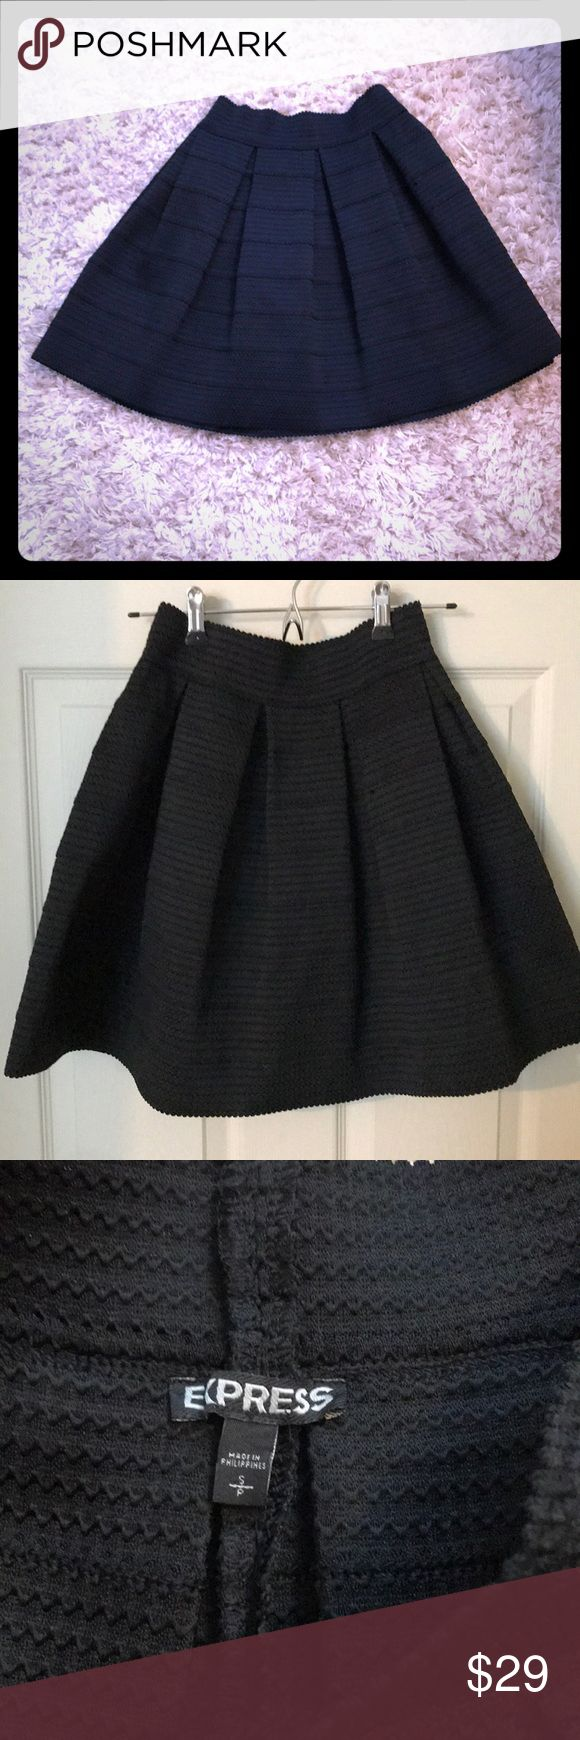 Black Express bandage skirt Black Express bandage skirt. Very slimming design! Size small. When on waist, skirt ends mid-thigh. Express Skirts A-Line or Full